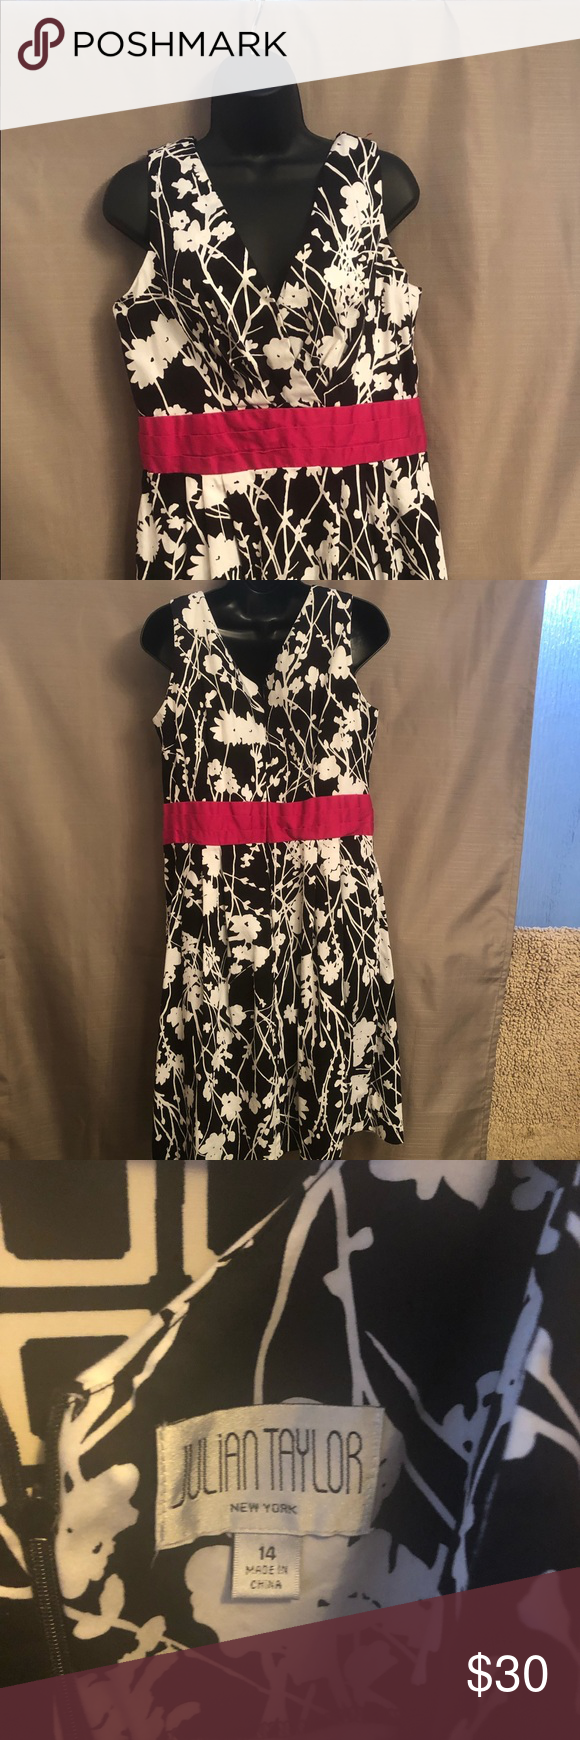 Julian Taylor Black and white dress Black and white dress with pink banded waist, size 14, like new. Zipper in the back. Perfect for a summer dinner! Julian Taylor Dresses Midi #summerdinneroutfits